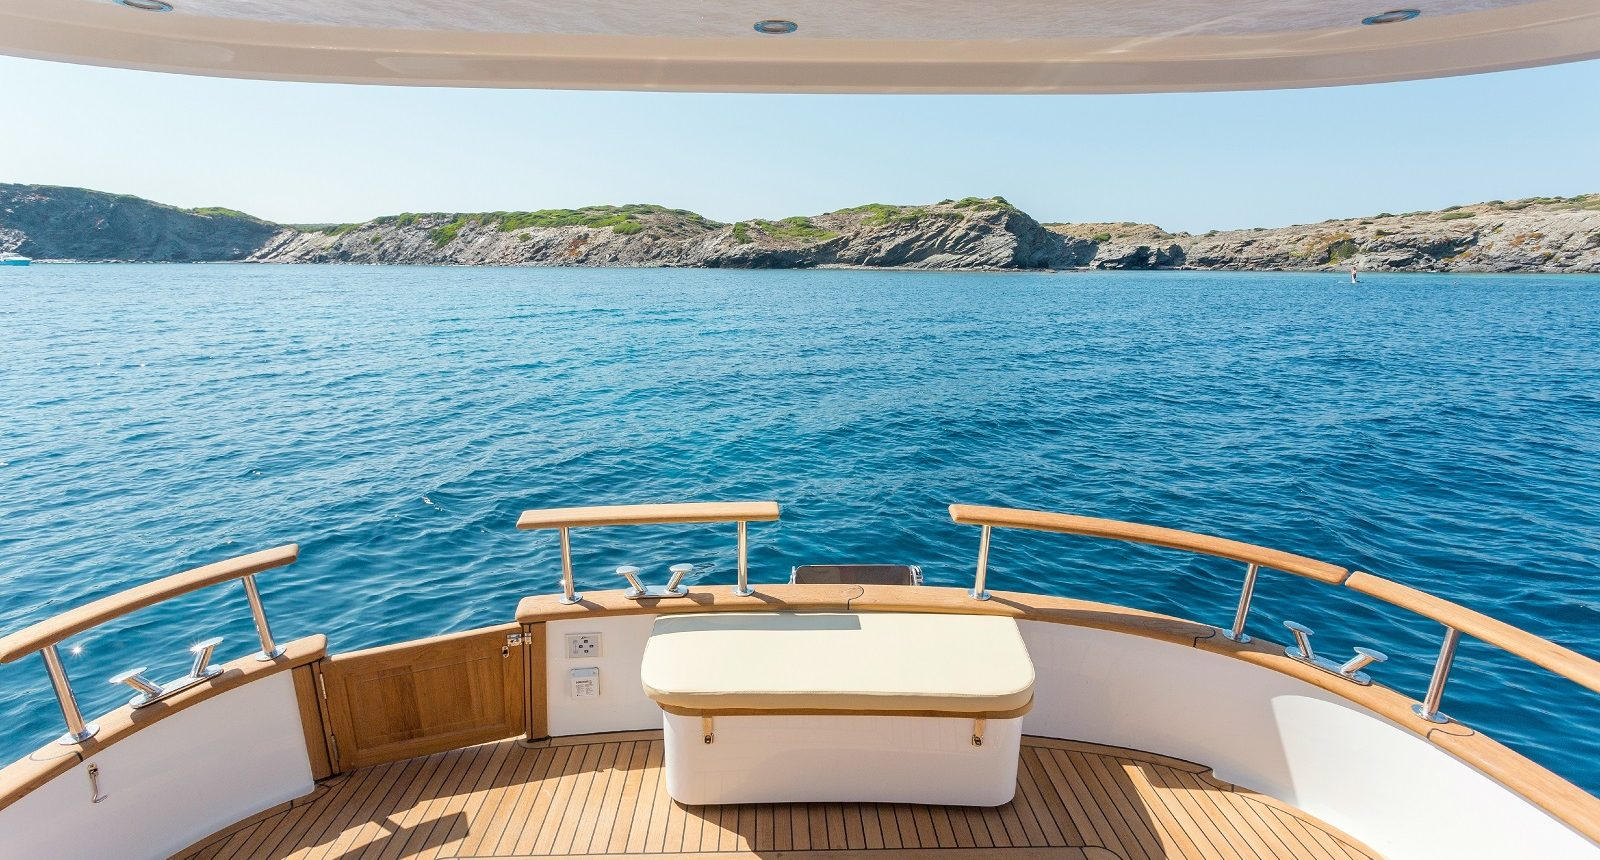 Minorca Islander 34 for sale - back deck